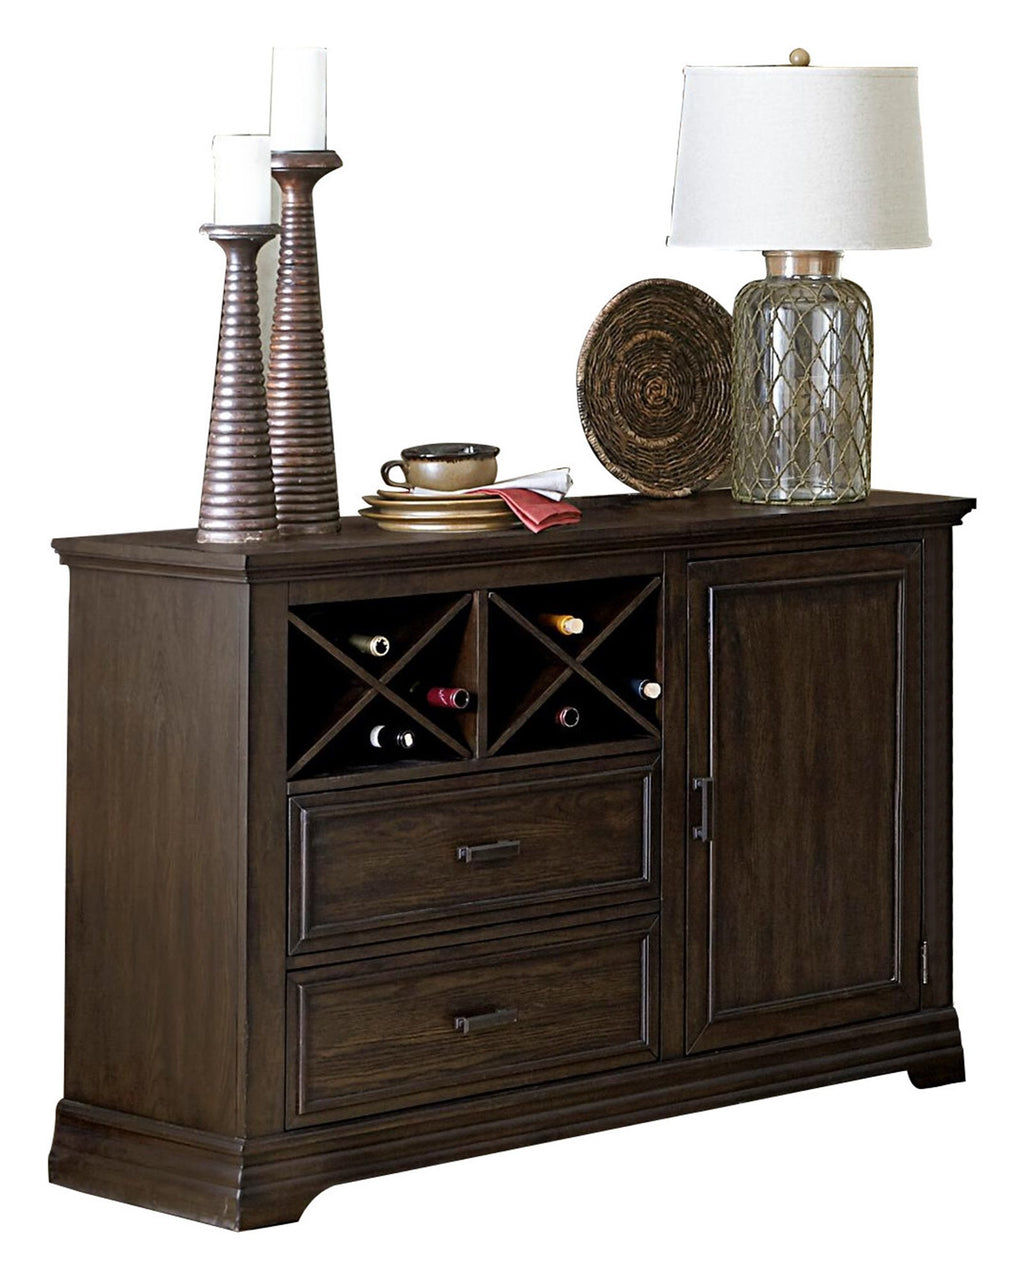 Homelegance Makah Server in Rustic Brown